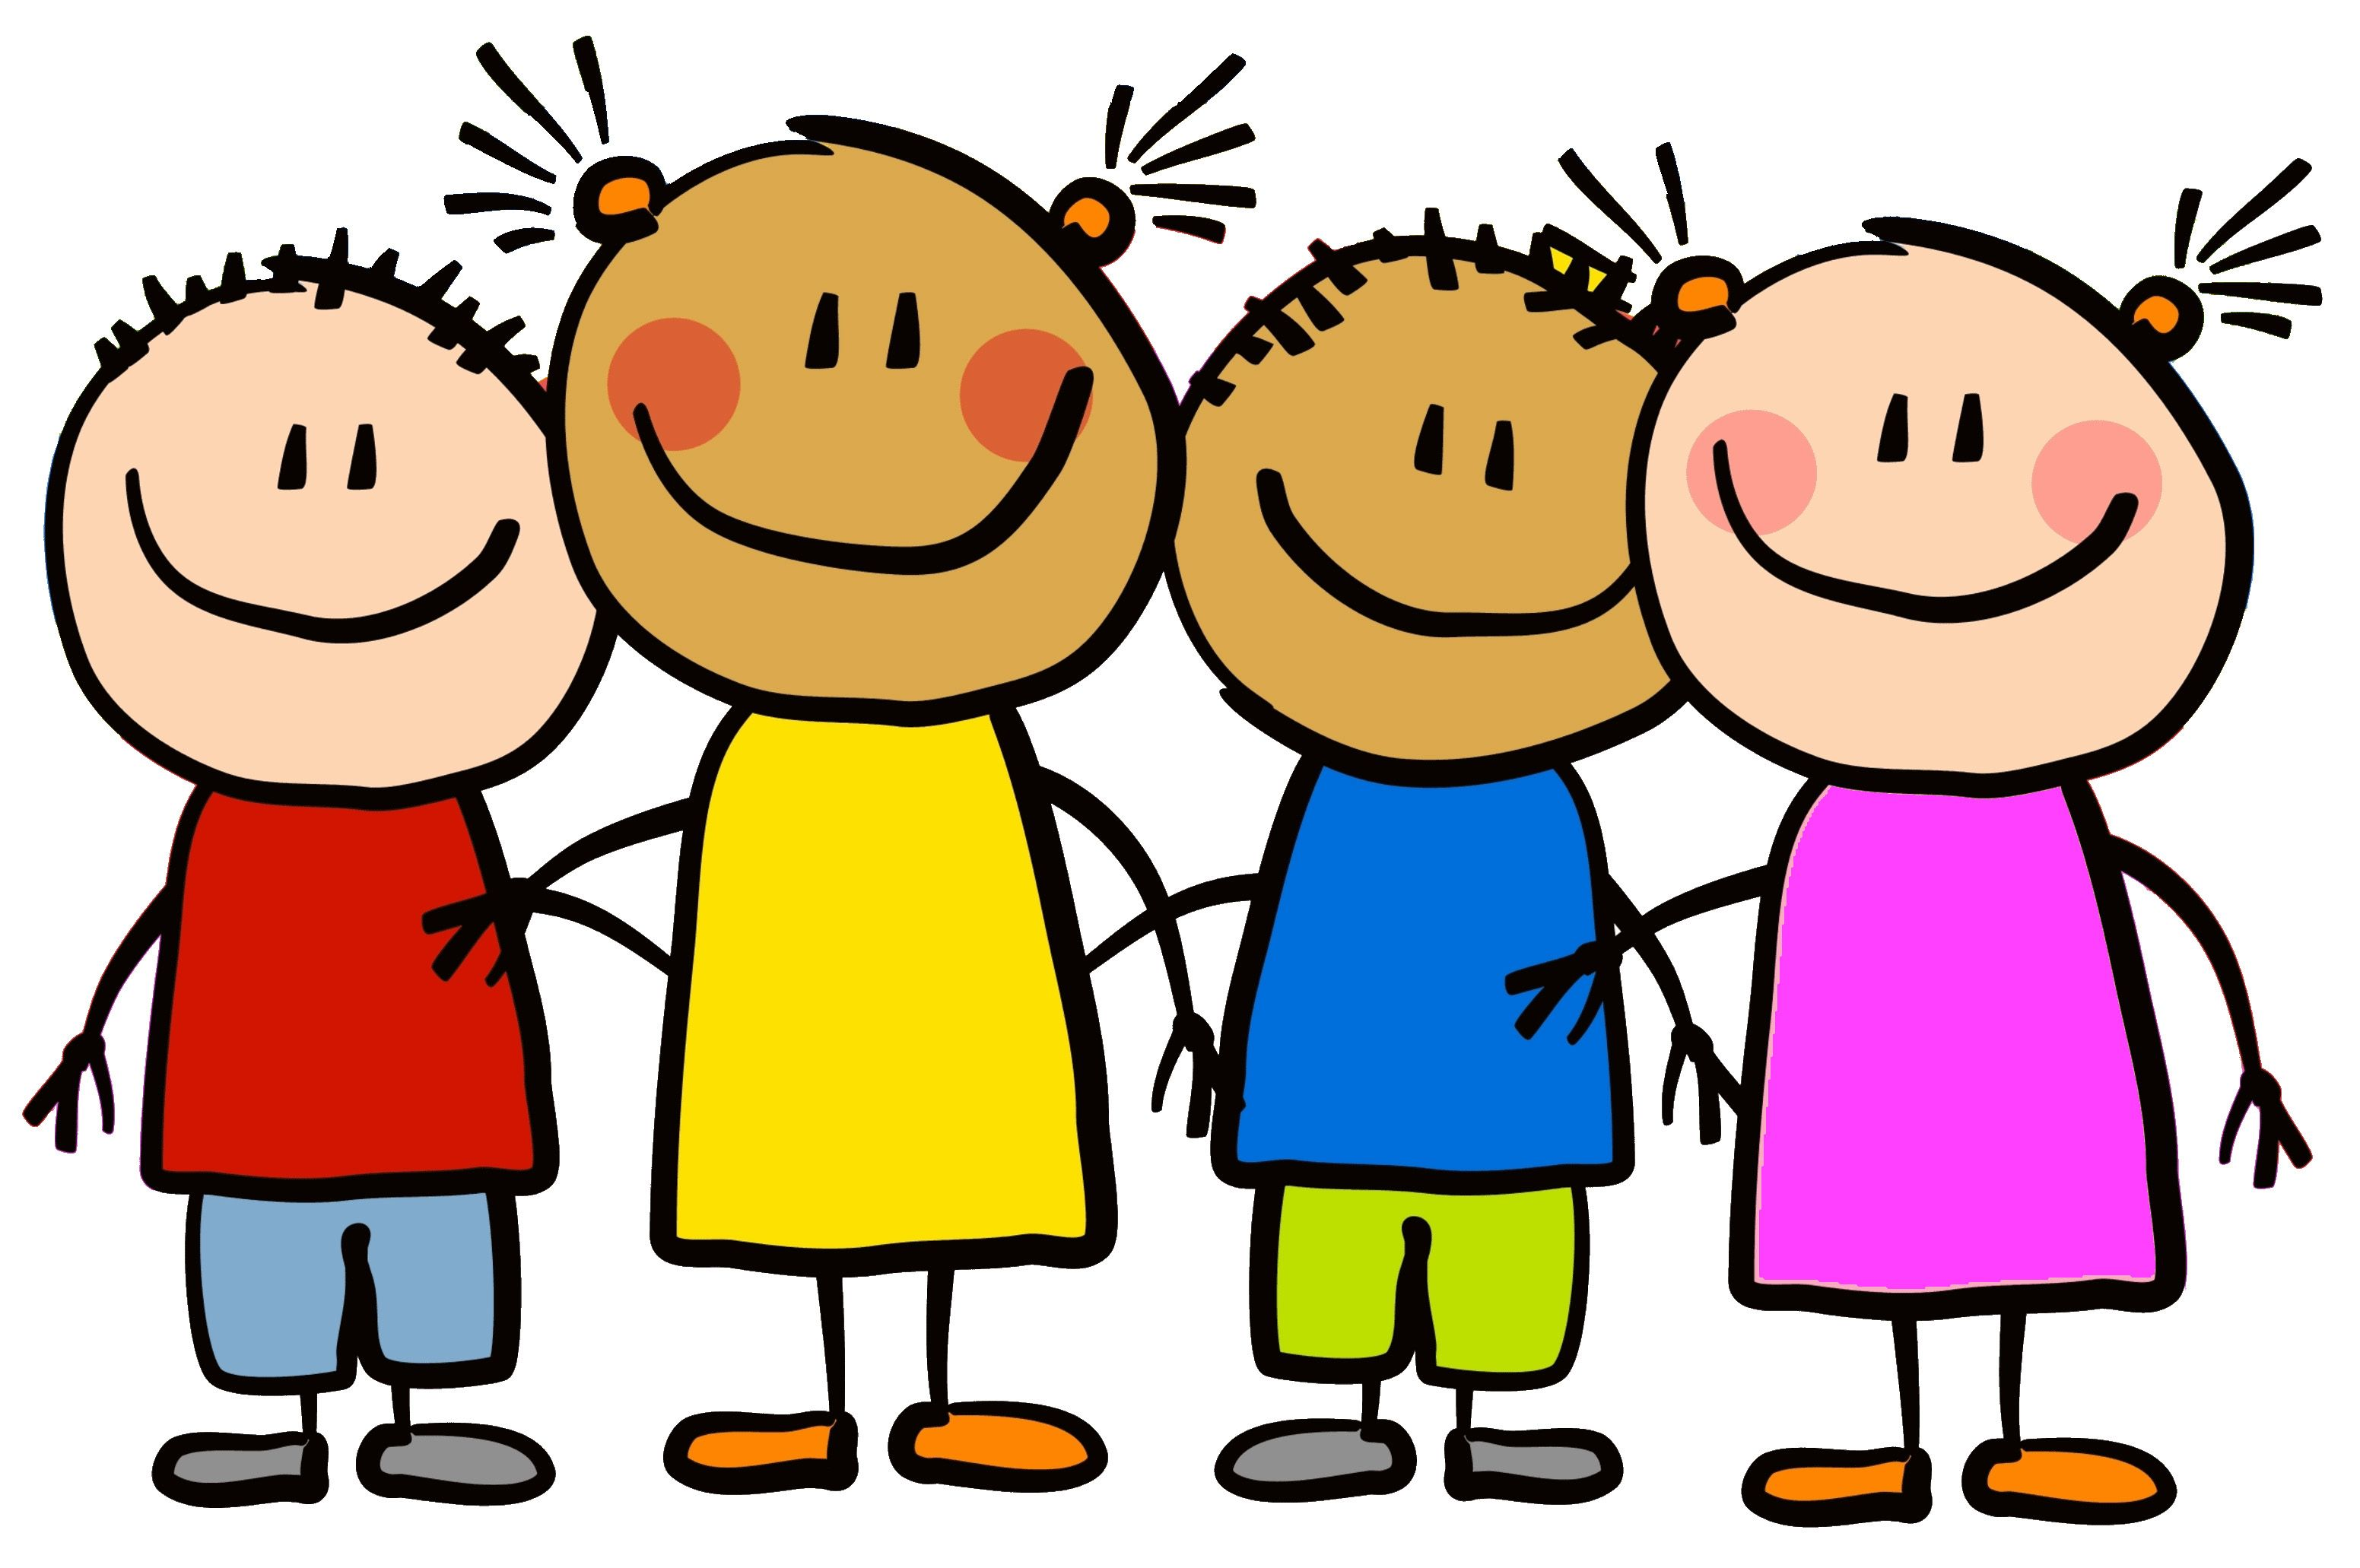 Children - Lets Break It Down | Clip art, Friends clipart, Art for ...